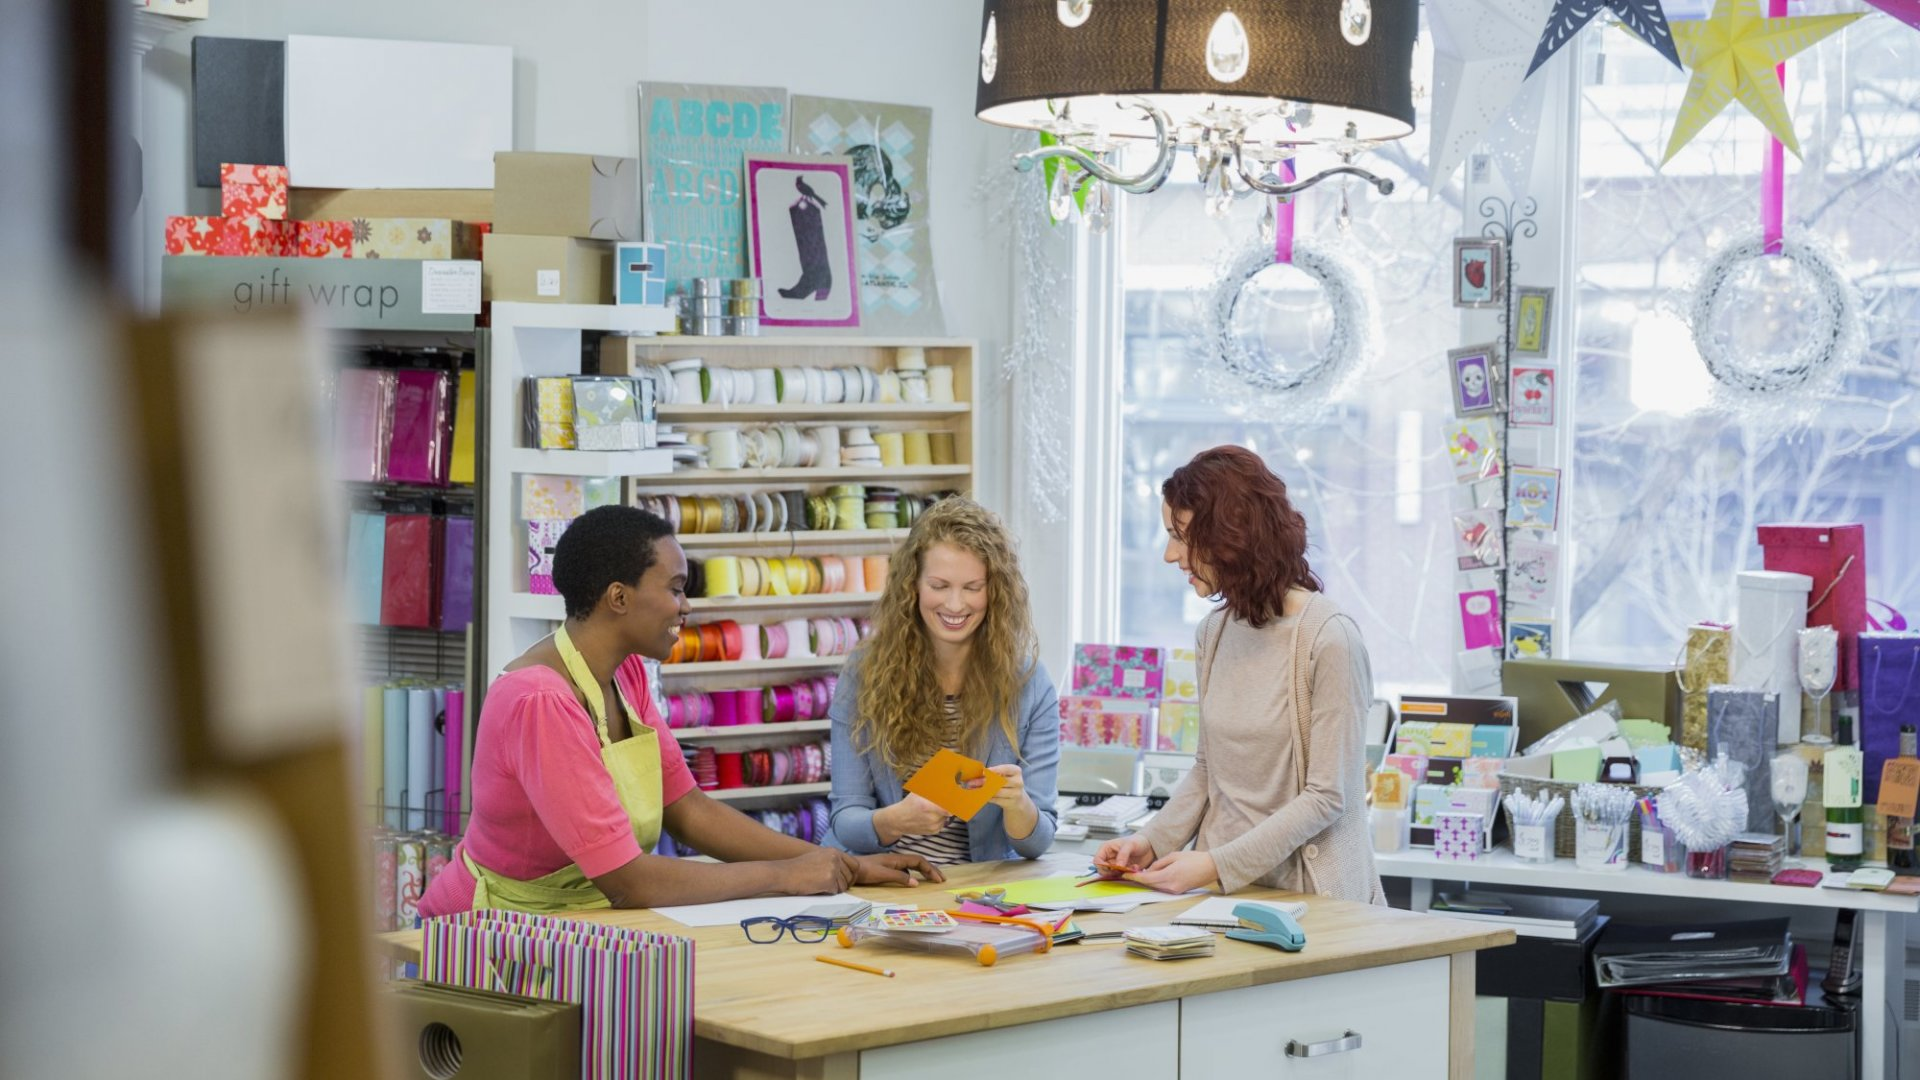 3 Things That Drive Consumers Nuts at Stores